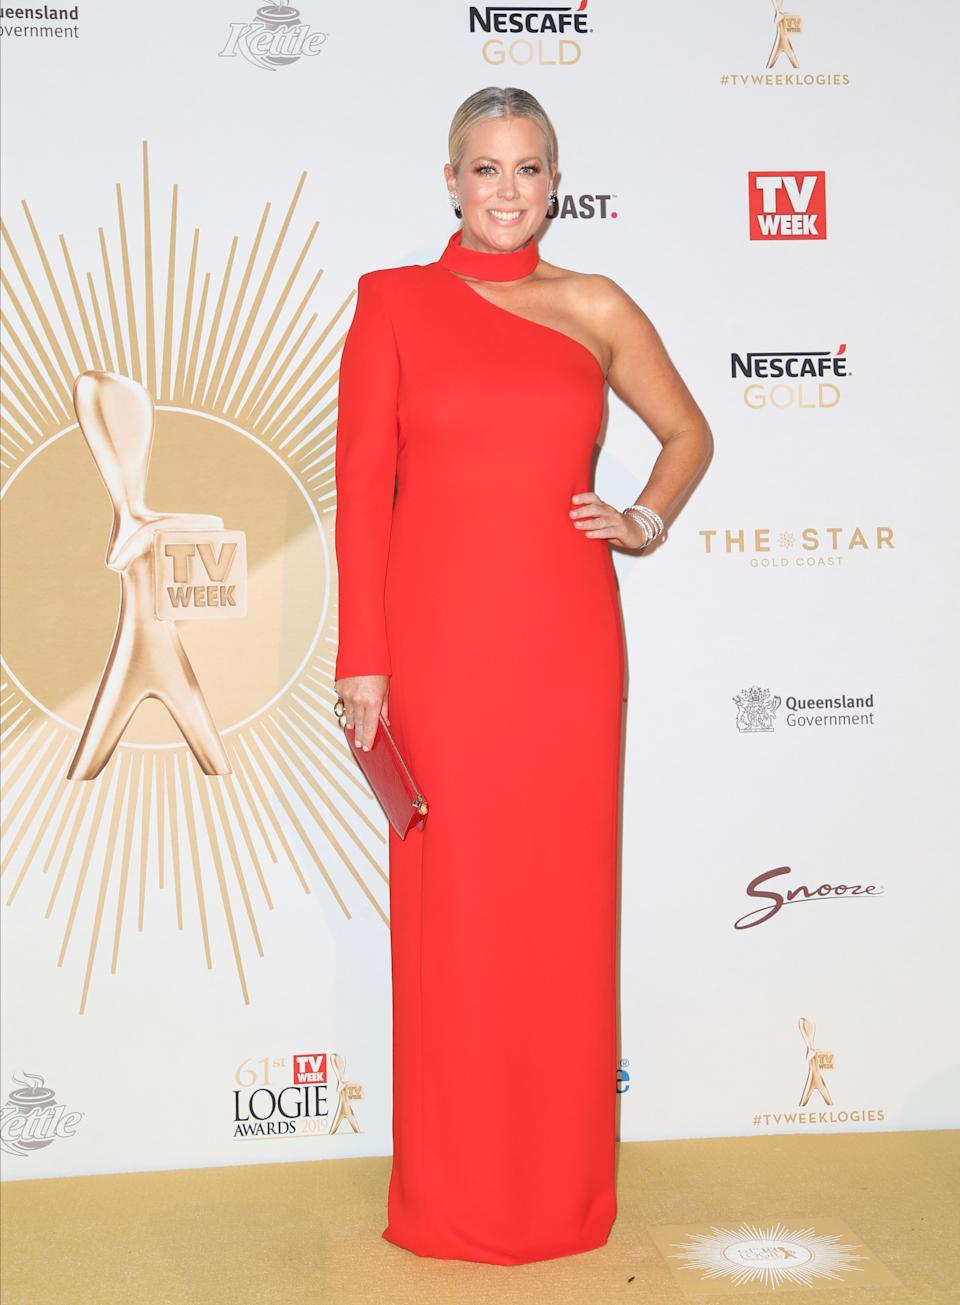 Samantha Armytage arrives at the 61st Annual TV WEEK Logie Awards at The Star Gold Coast on June 30, 2019 on the Gold Coast, Australia. (Photo by Faith Moran/Wireimage)